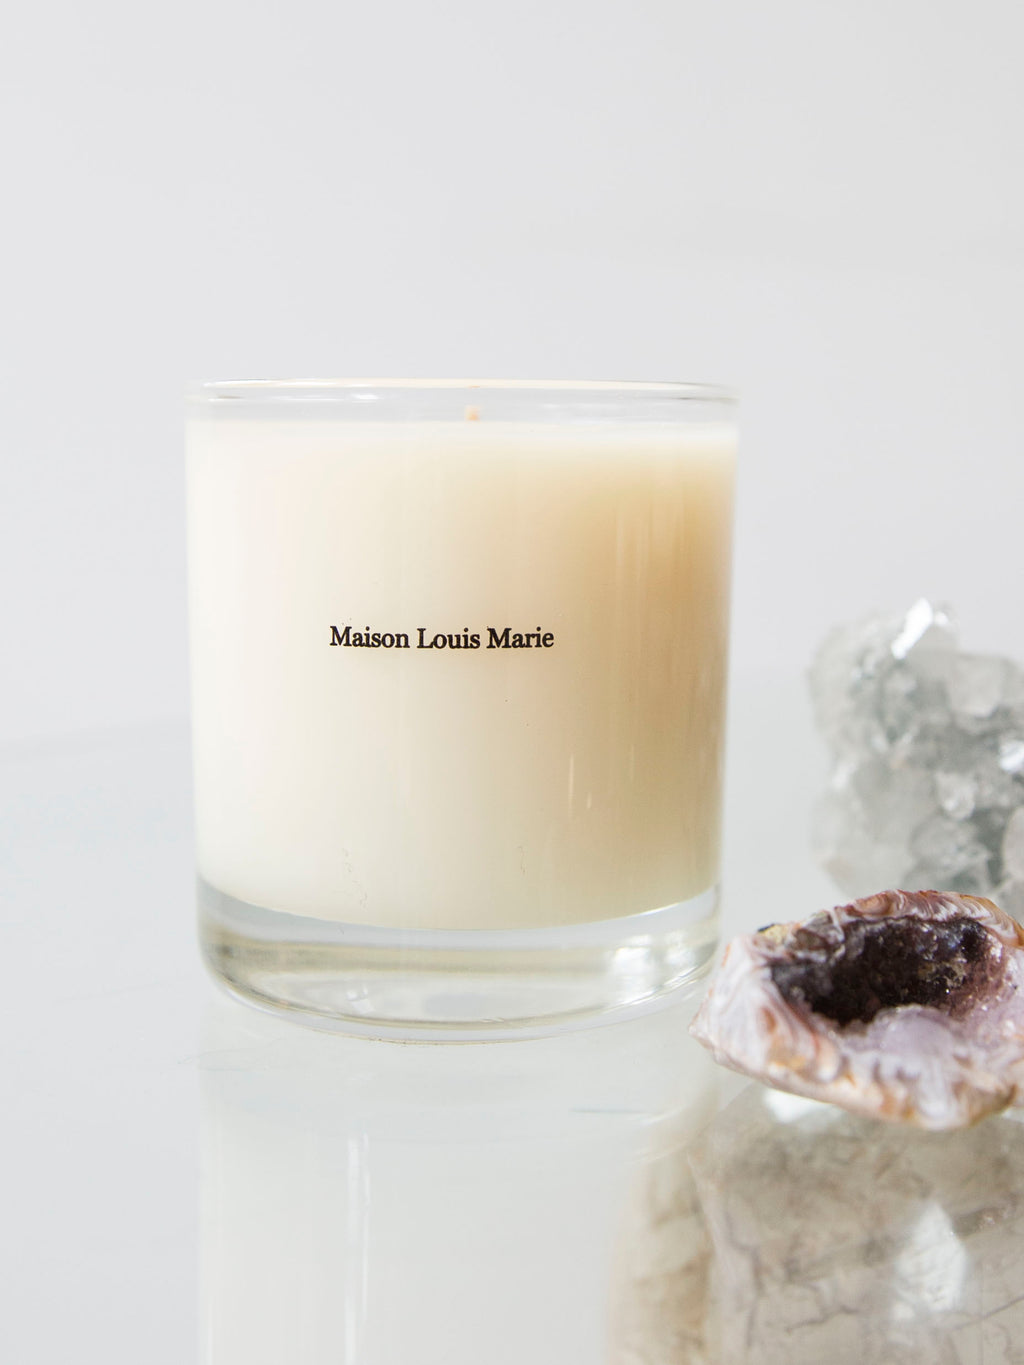 MAISON LOUIS MARIE No. 10 Aboukir Candle